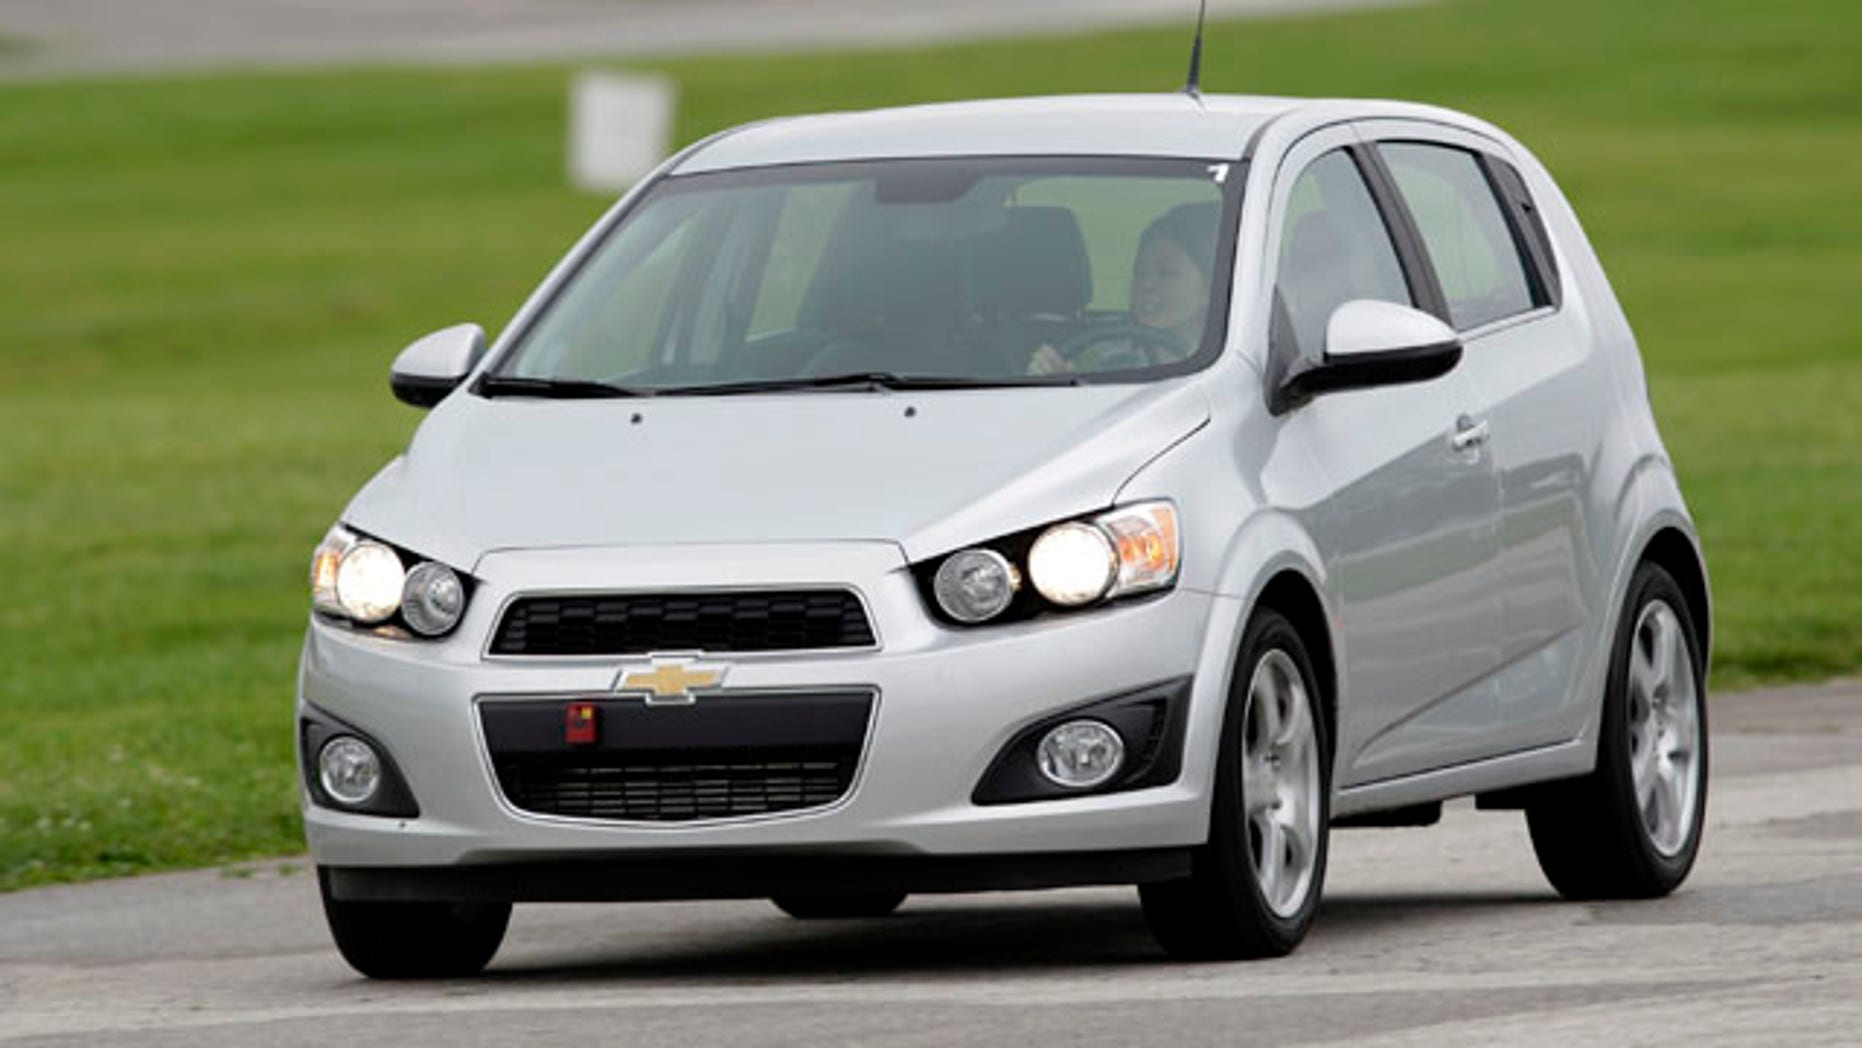 A 2012 Chevrolet Sonic hatchback is driven around the track during a media engineering drive in Indianapolis, Indiana May 27, 2011.   REUTERS/AJ Mast/Chevrolet/Handout    (UNITED STATES - Tags: TRANSPORT BUSINESS) FOR EDITORIAL USE ONLY. NOT FOR SALE FOR MARKETING OR ADVERTISING CAMPAIGNS. THIS IMAGE HAS BEEN SUPPLIED BY A THIRD PARTY. IT IS DISTRIBUTED, EXACTLY AS RECEIVED BY REUTERS, AS A SERVICE TO CLIENTS